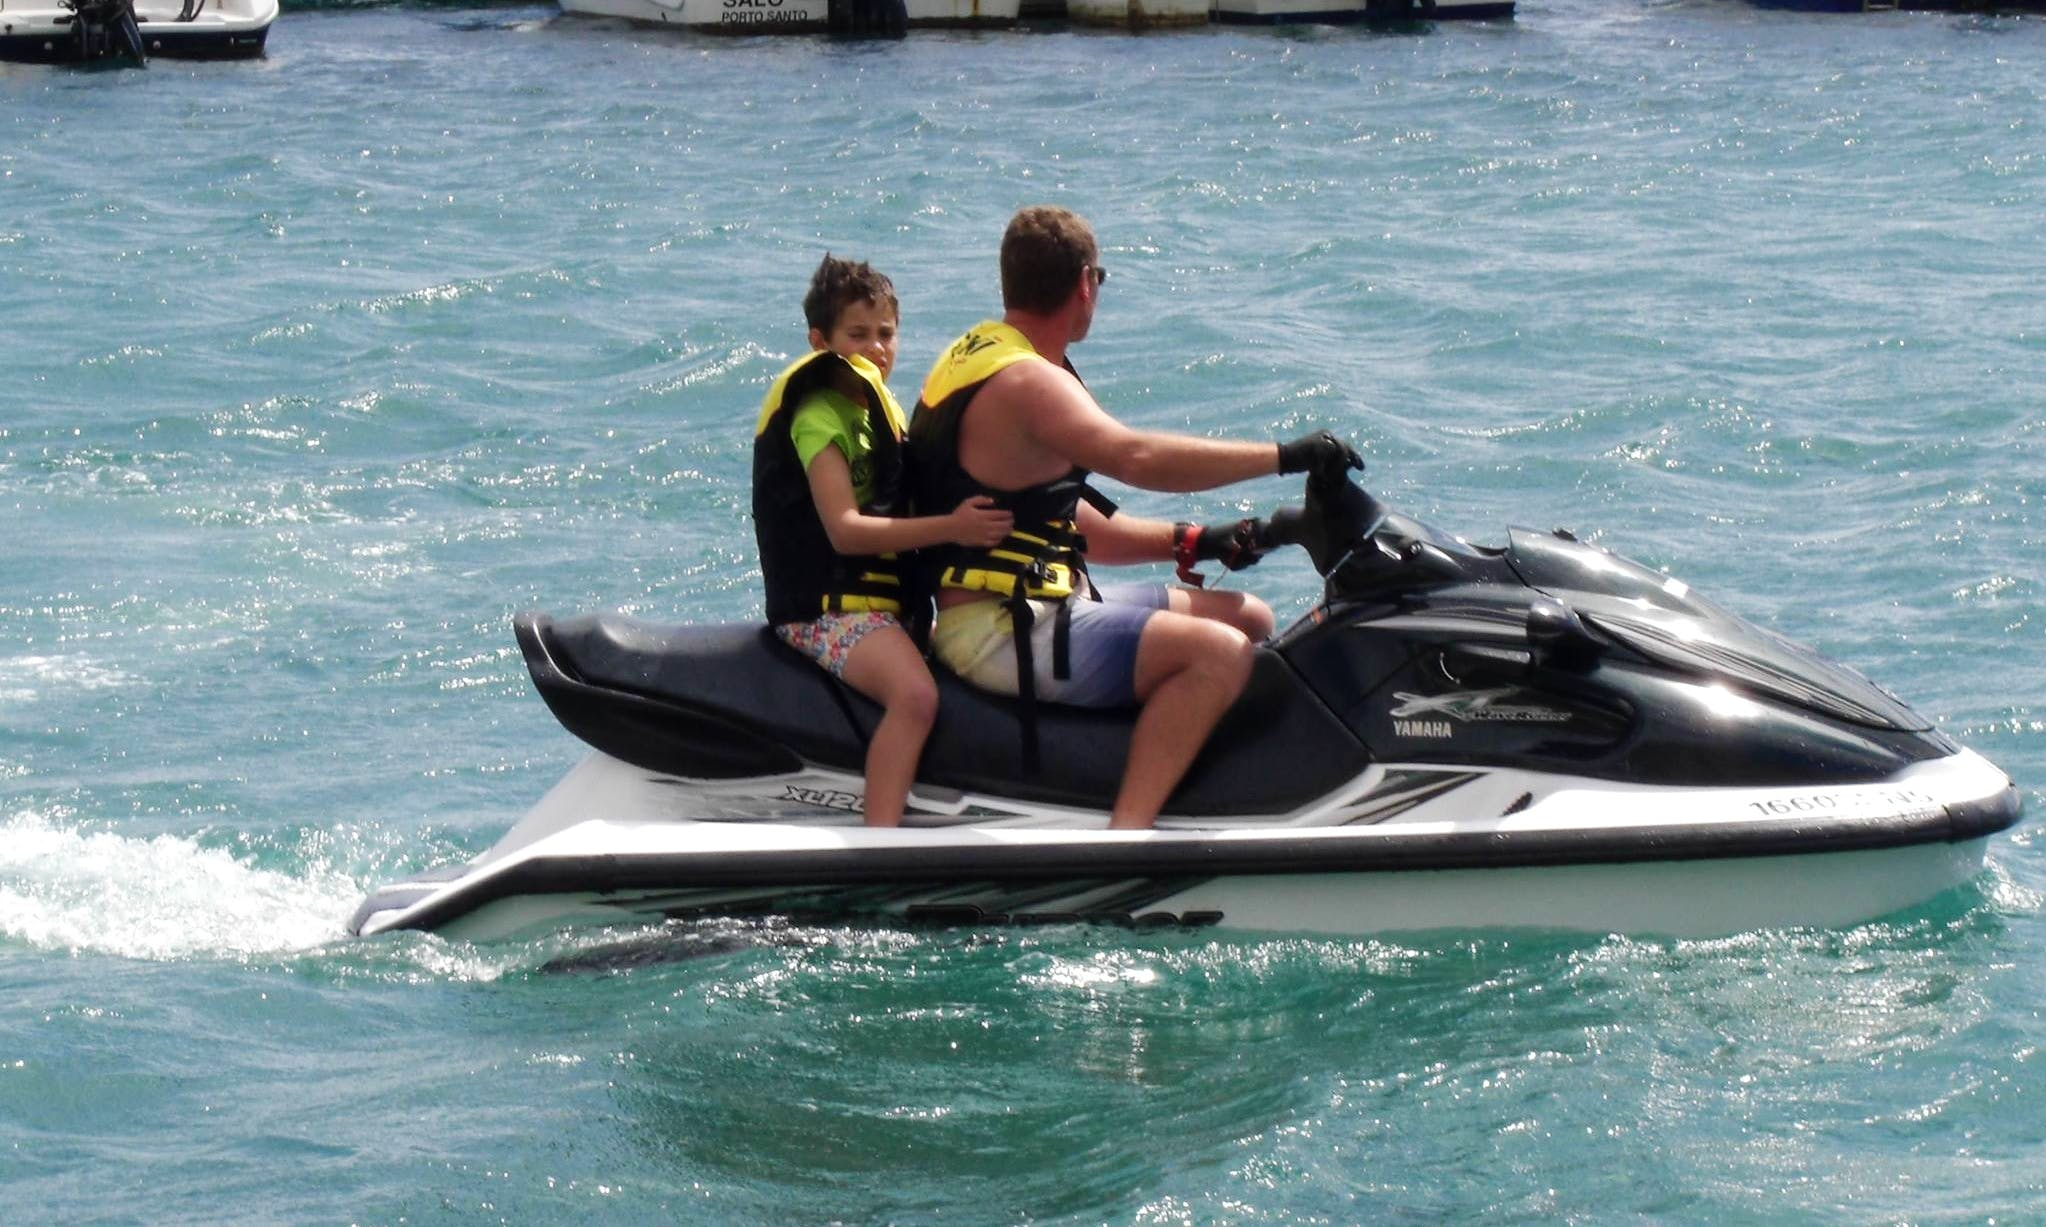 Rent a Jet Ski in Porto Santo, Portugal